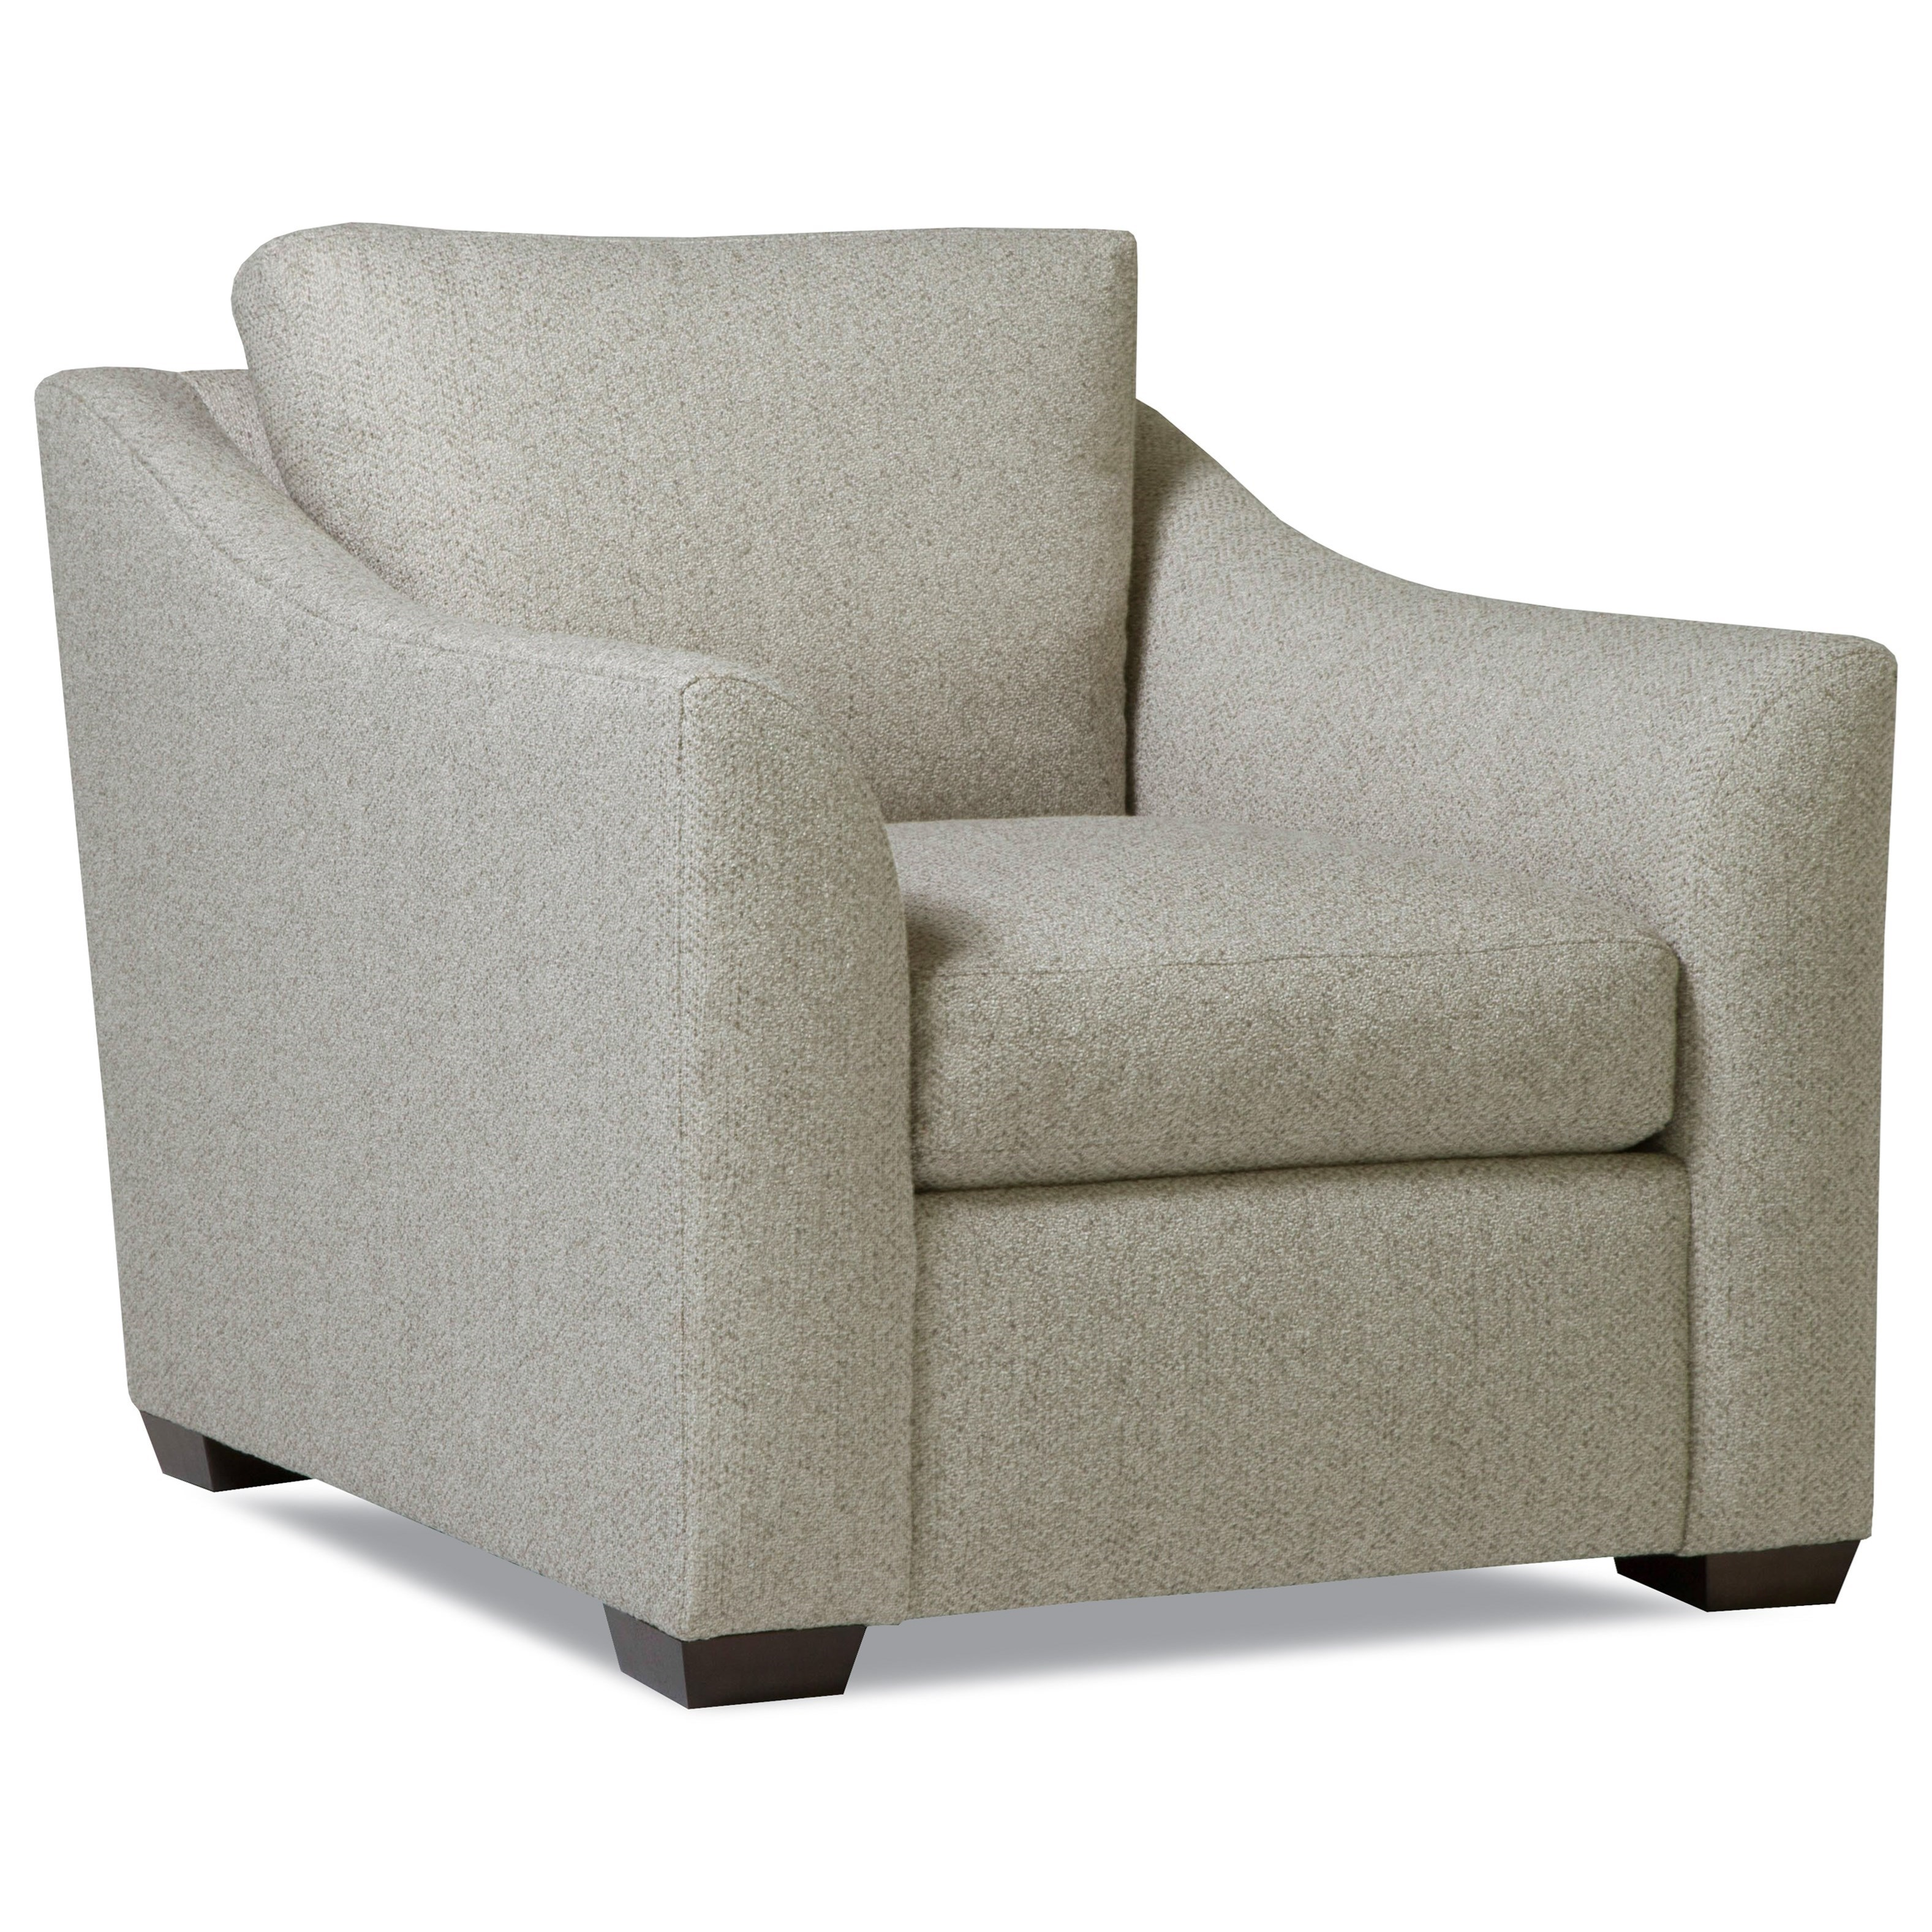 Plush Chair w/ Flared Arms by Huntington House at Belfort Furniture